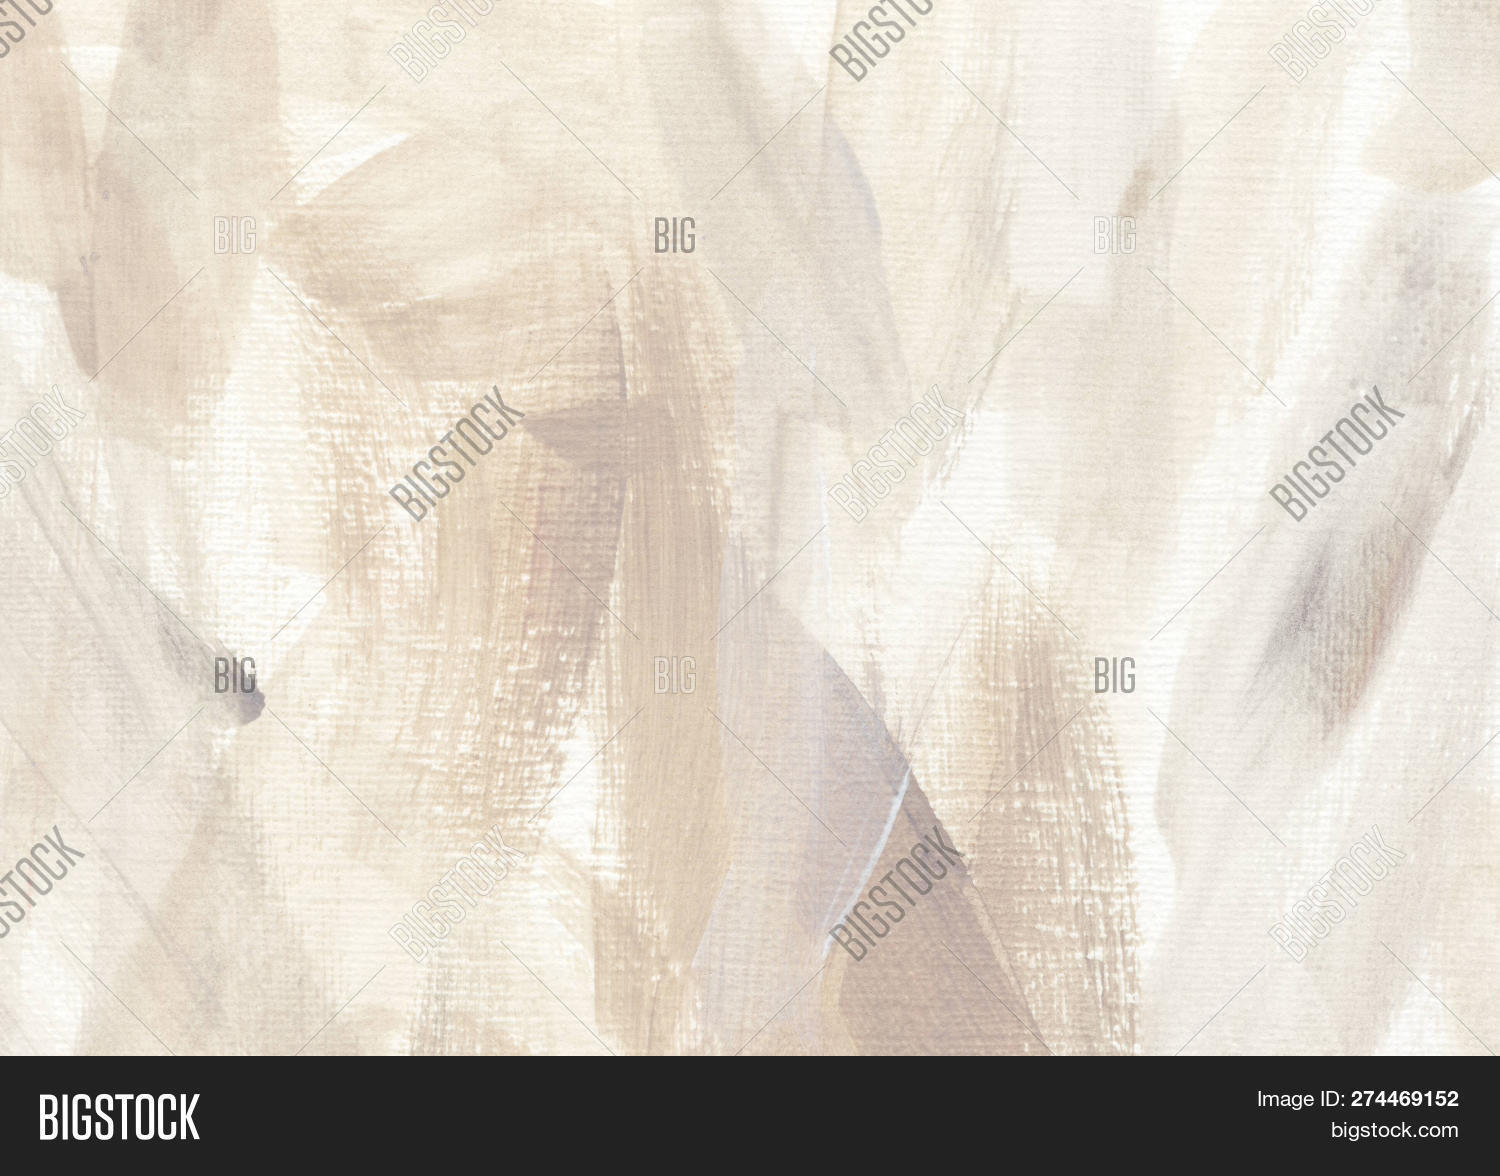 abstract,abstraction,art,artistic,autumn,backdrop,background,branding,christmas,colors,delicate,desaturated,dirty,dreamy,elegant,expressive,fall,feminine,gentle,girly,glamorous,grunge,hand,high,hipster,light,magical,minimal,minimalist,modern,neutral,nordic,painted,pastel,resolution,romantic,scandinavian,soft,spring,stylish,subtle,tender,texture,tones,wallpaper,watercolor,watercolour,wedding,winter,women